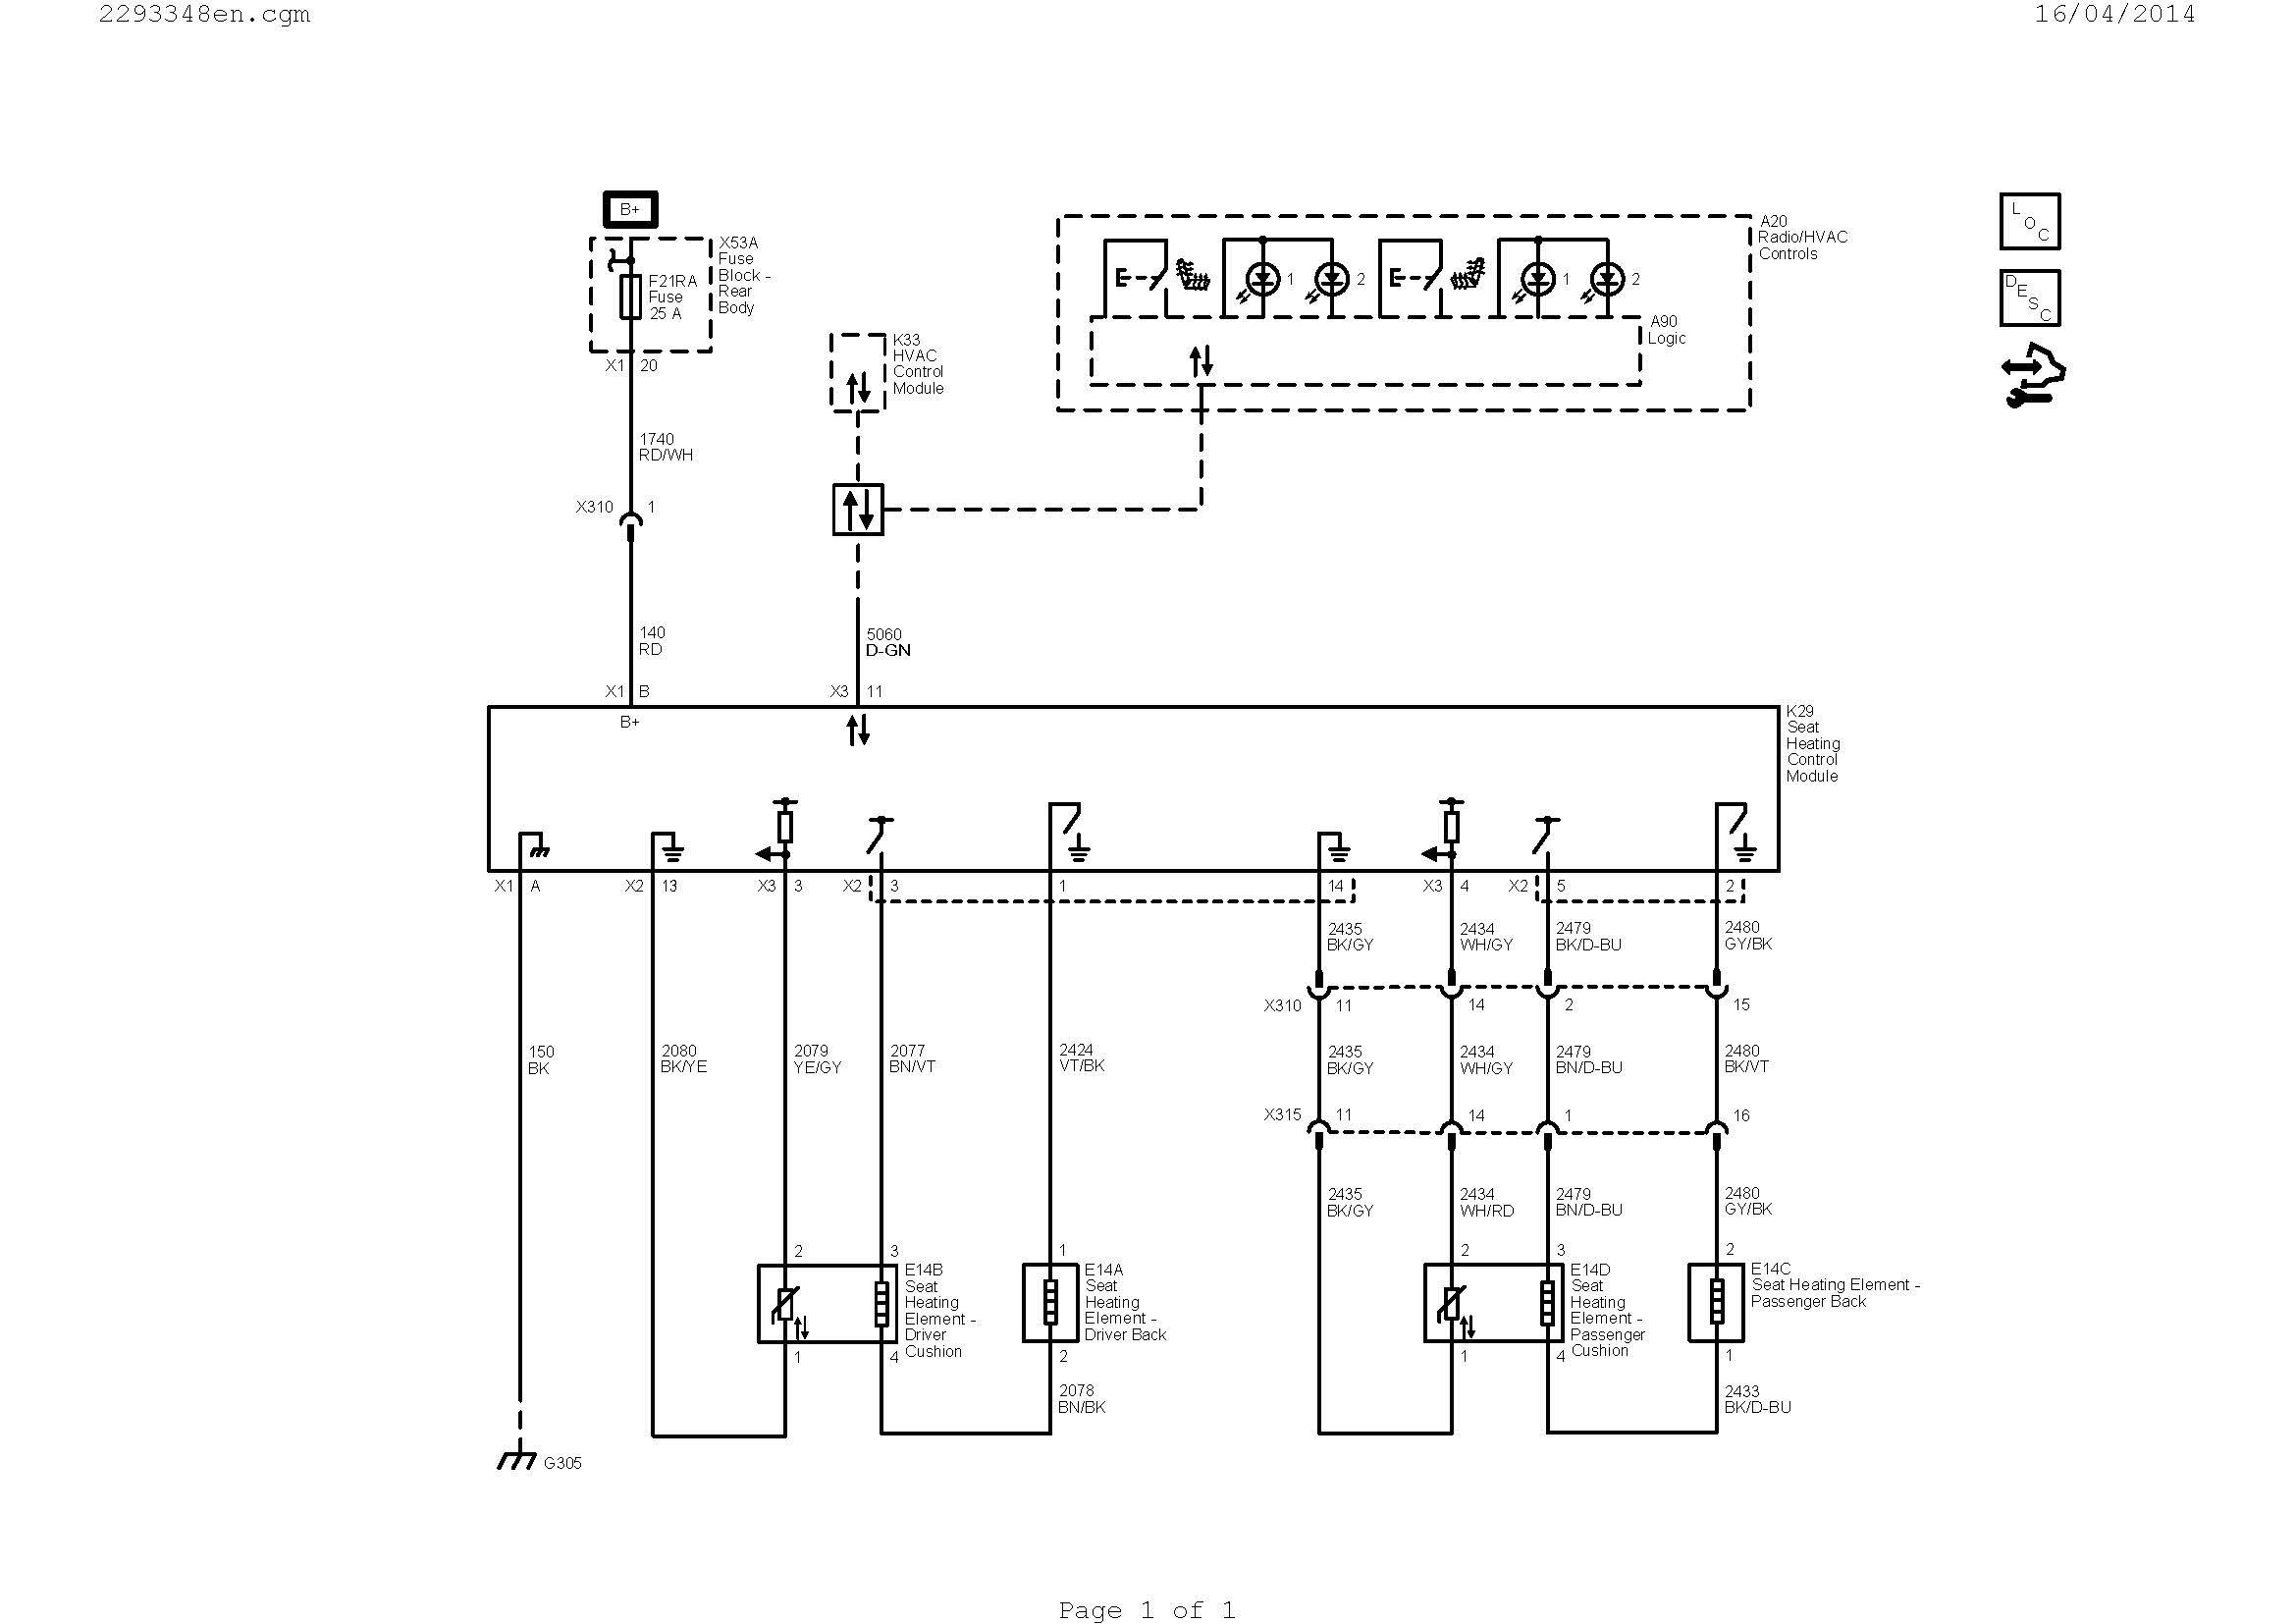 hvac transformer wiring diagram Download-Wiring Diagram For Changeover Relay Inspirationa Wiring Diagram Ac Valid Hvac Diagram Best Hvac Diagram 0d – Wire 16-j